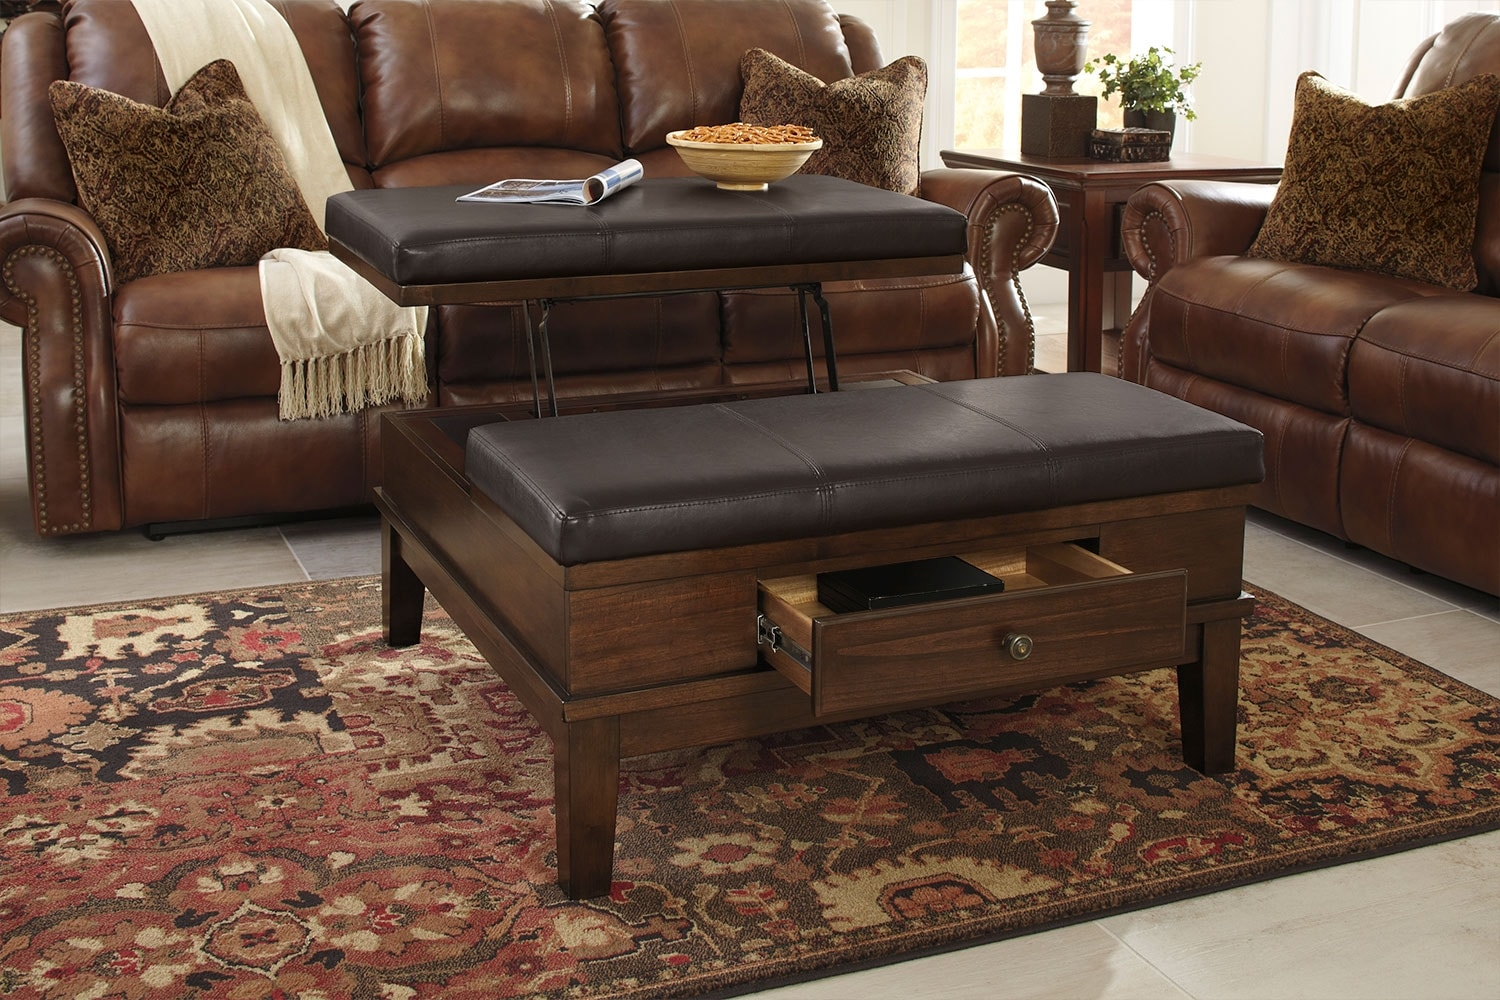 Gately ottoman coffee table with lift top the brick - Ottoman coffee tables living room ...